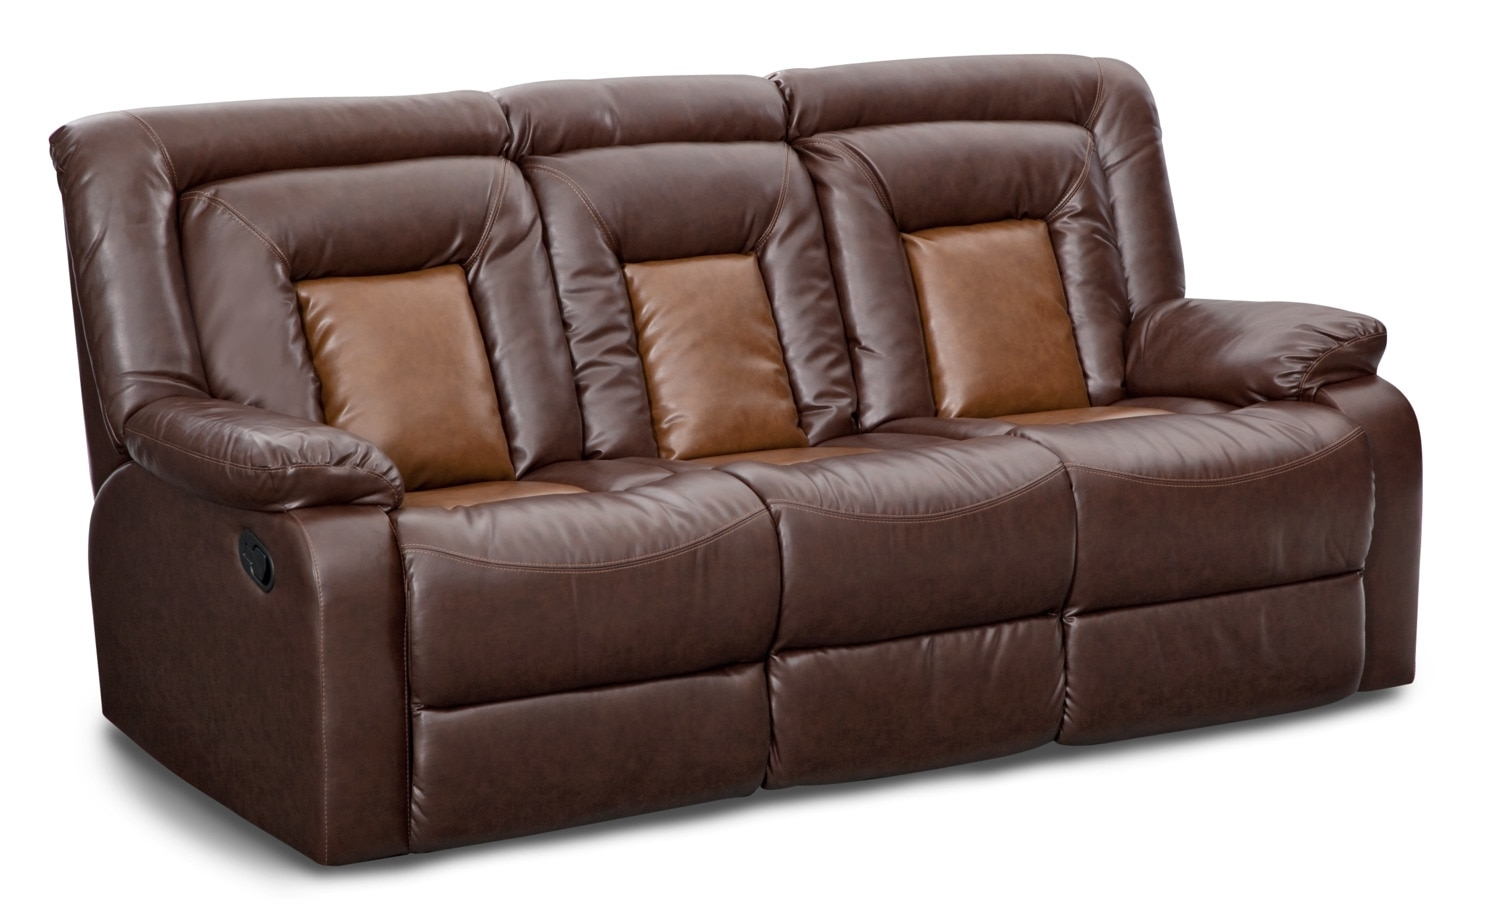 Top 15 Overstuffed Sofas And Chairs Sofa Ideas